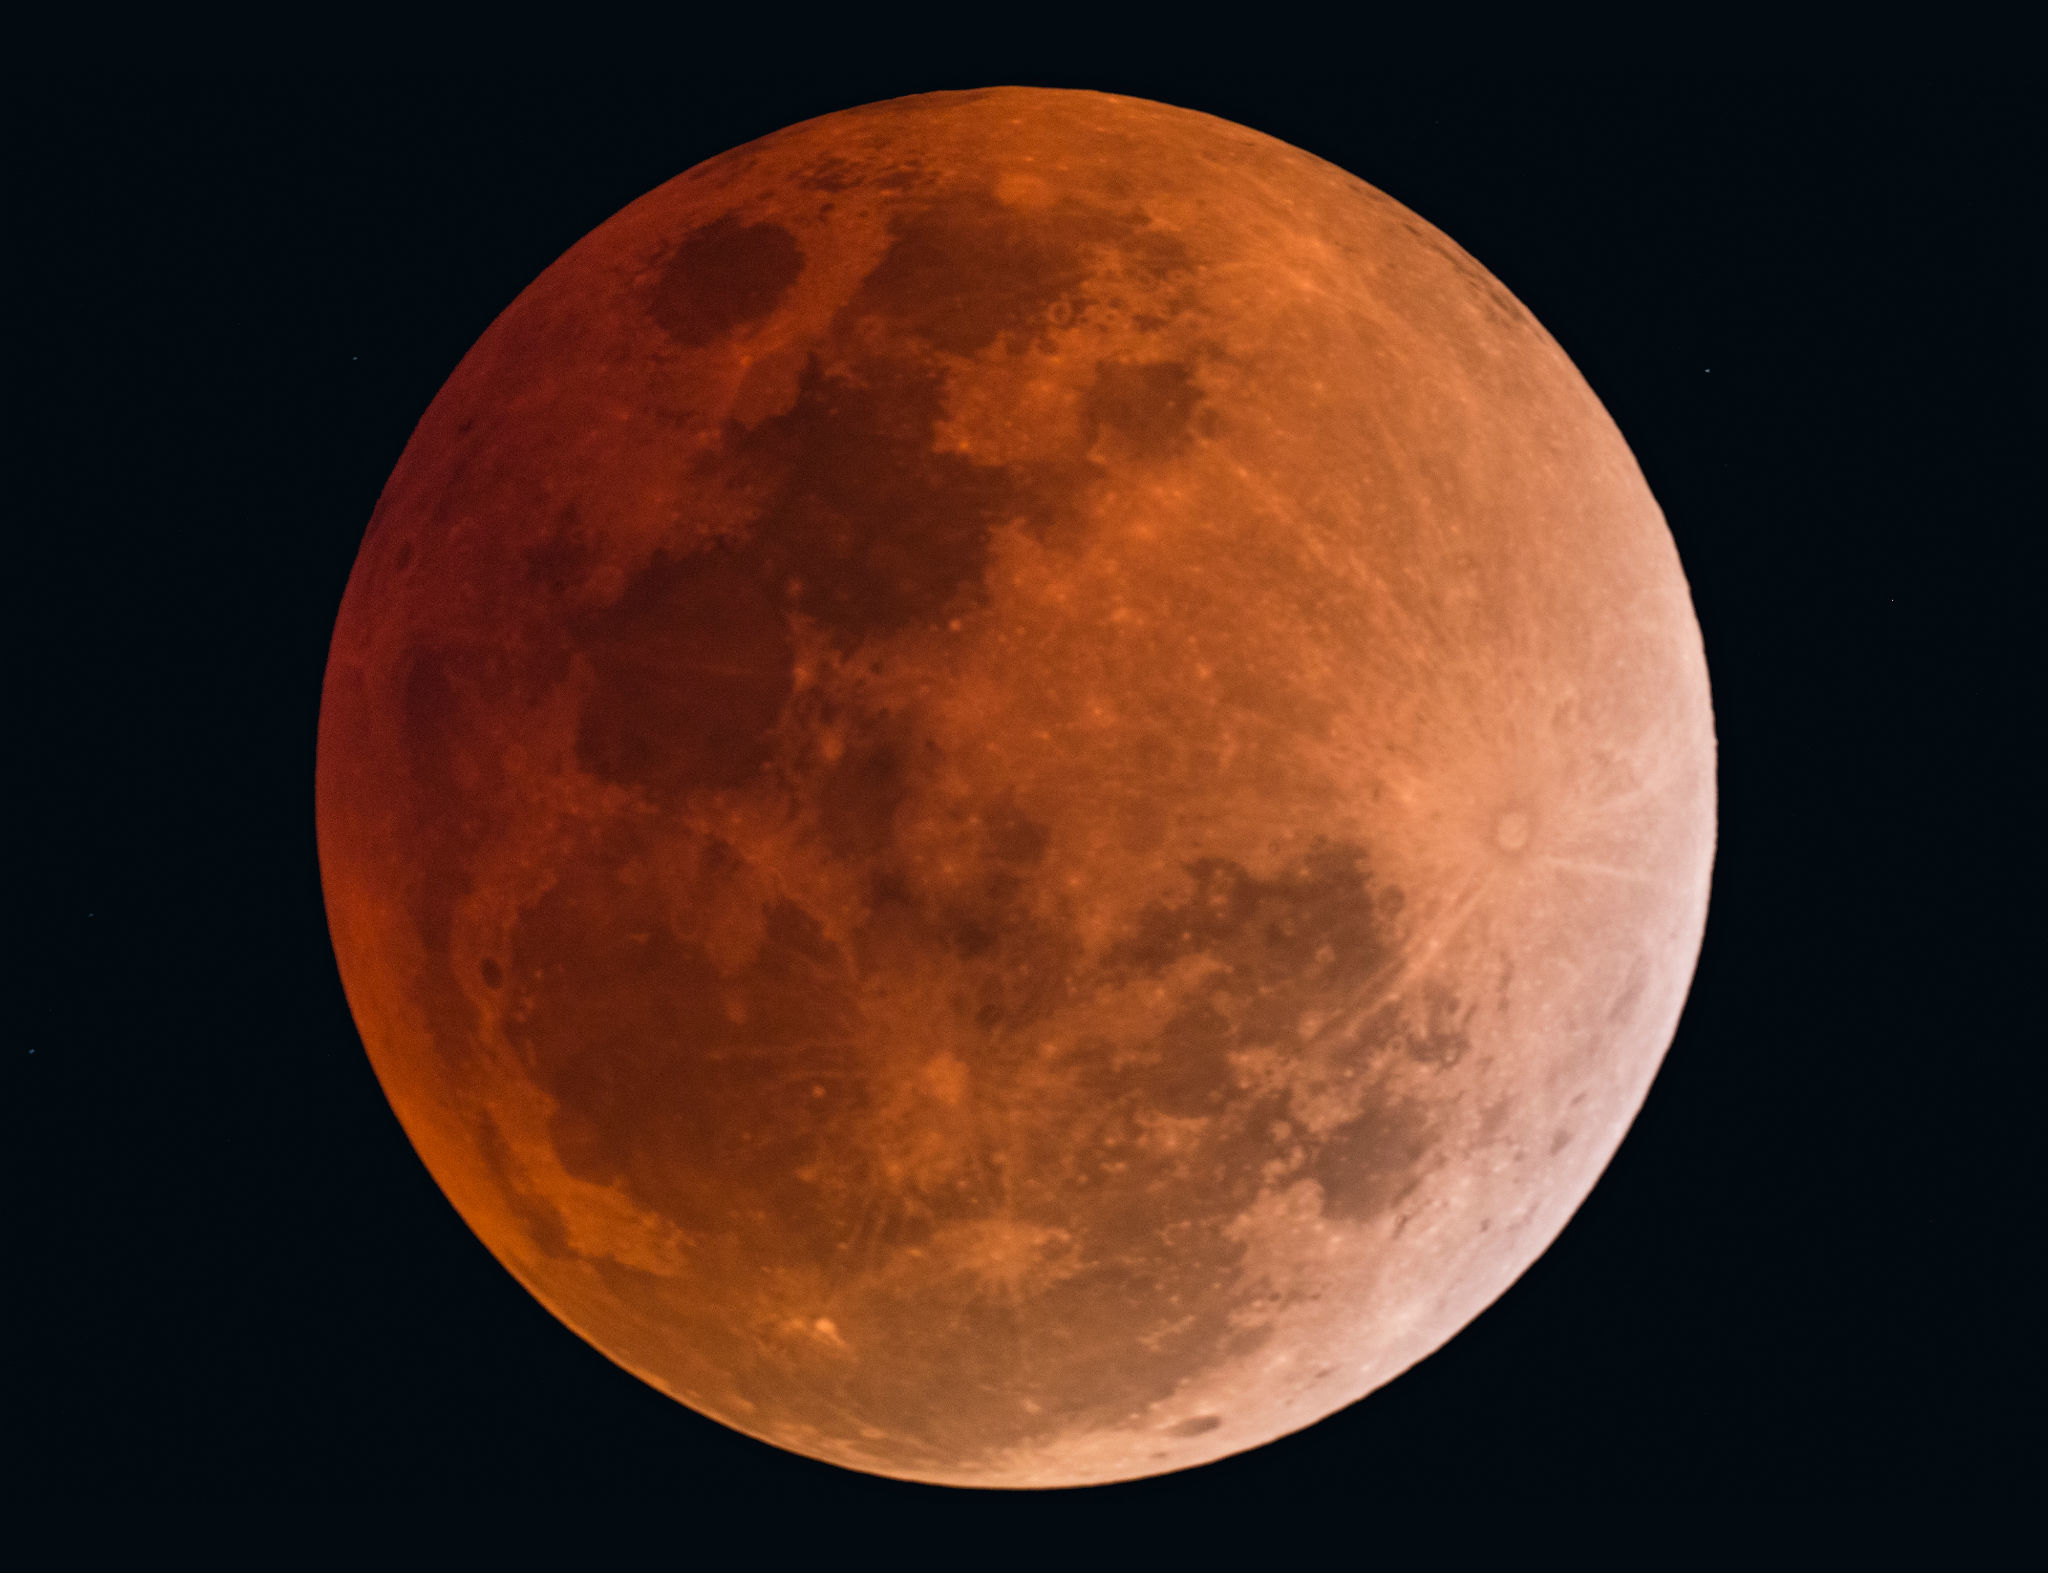 Blood moon eclipse 2018: what, when and how to see it